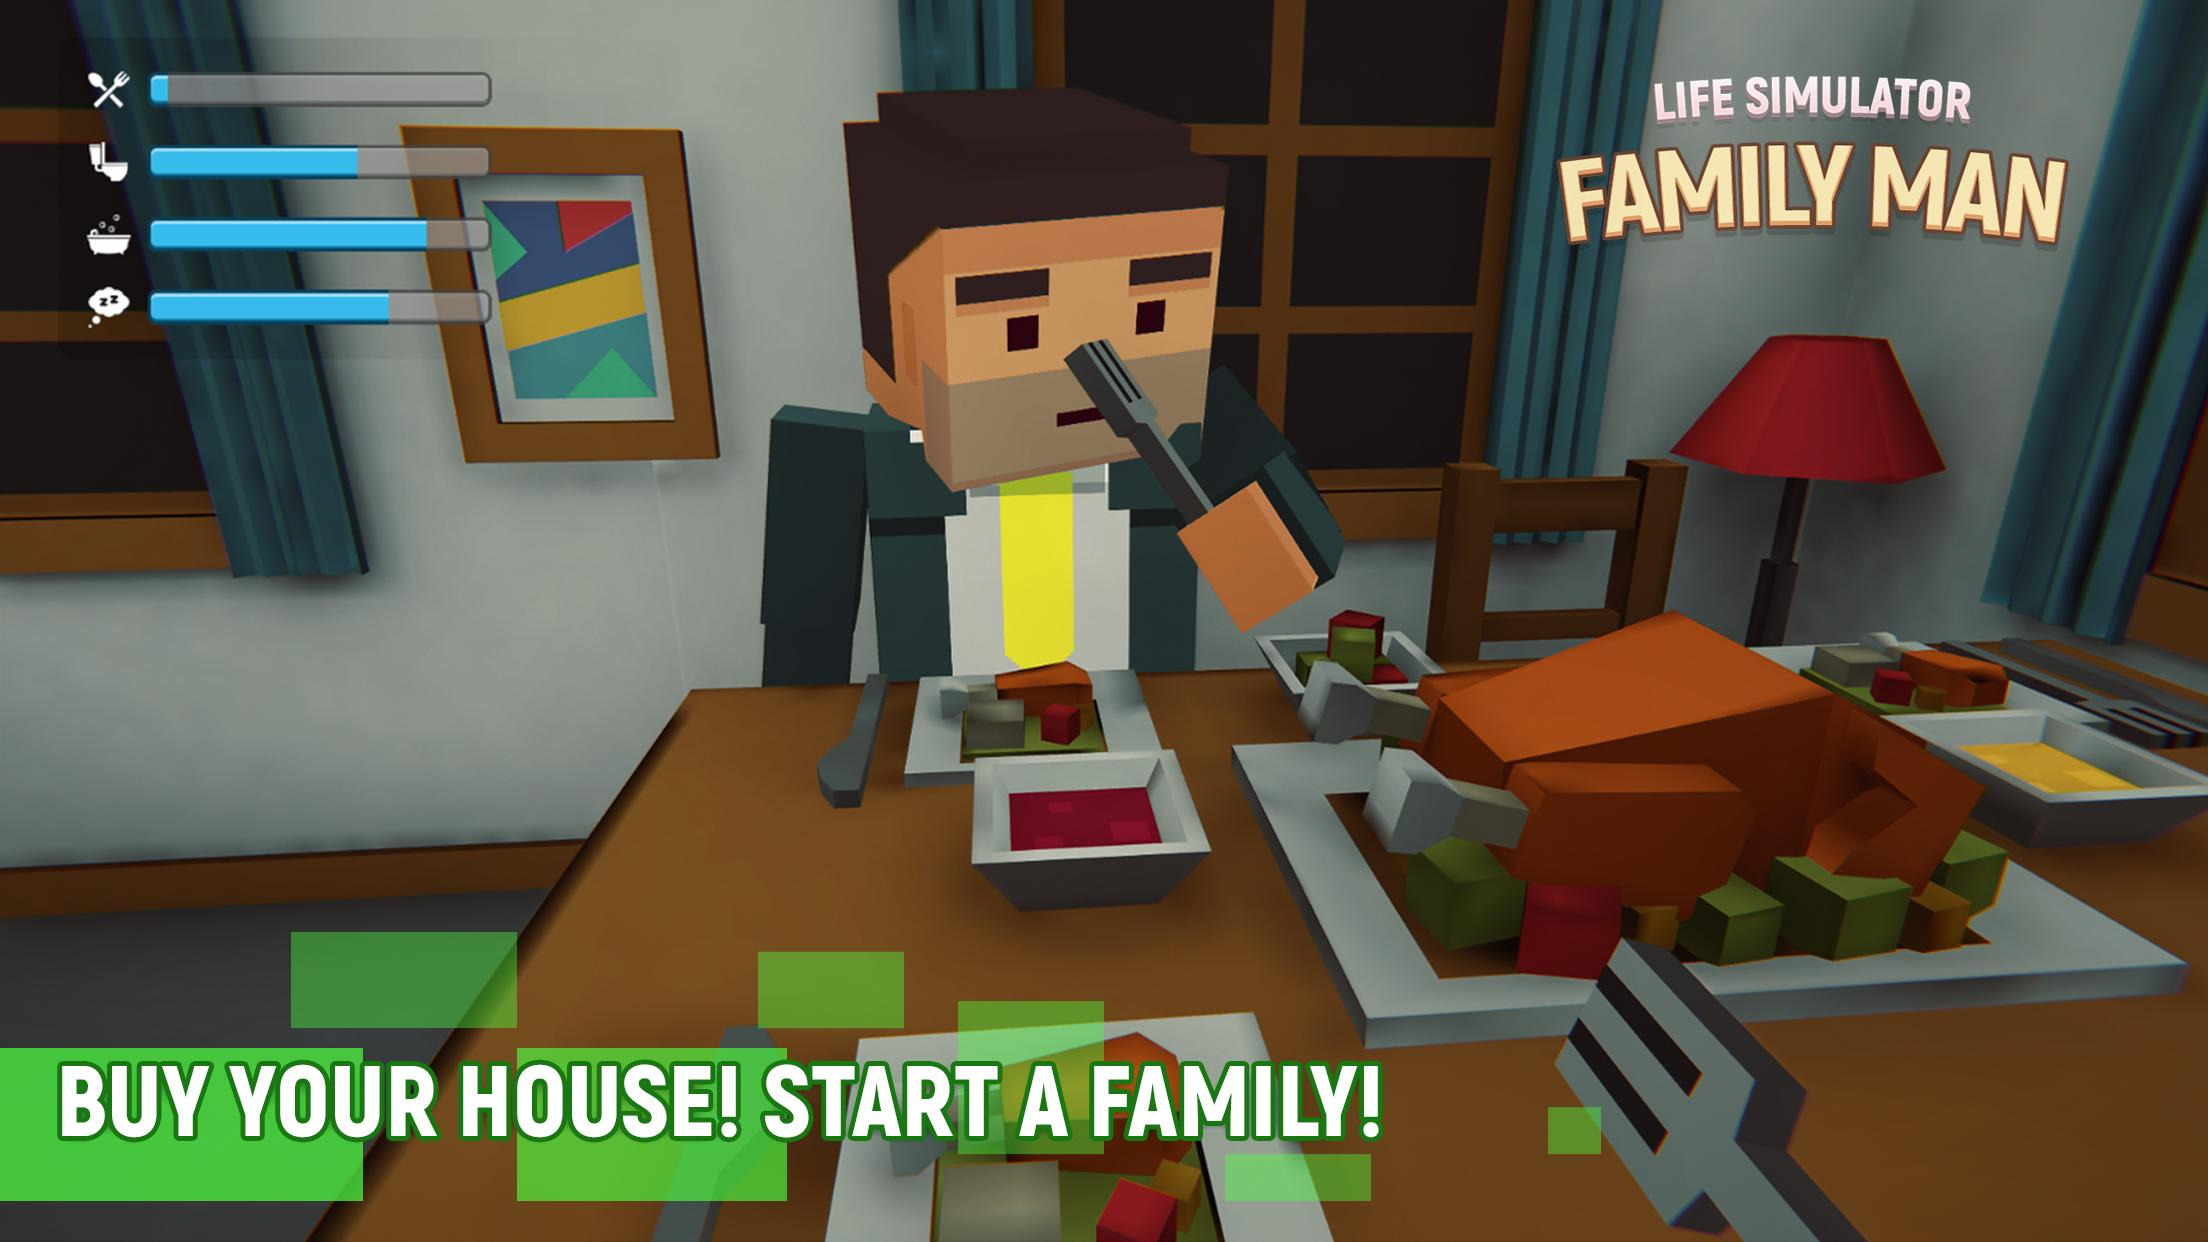 Family Man - Life Simulator for Android - APK Download